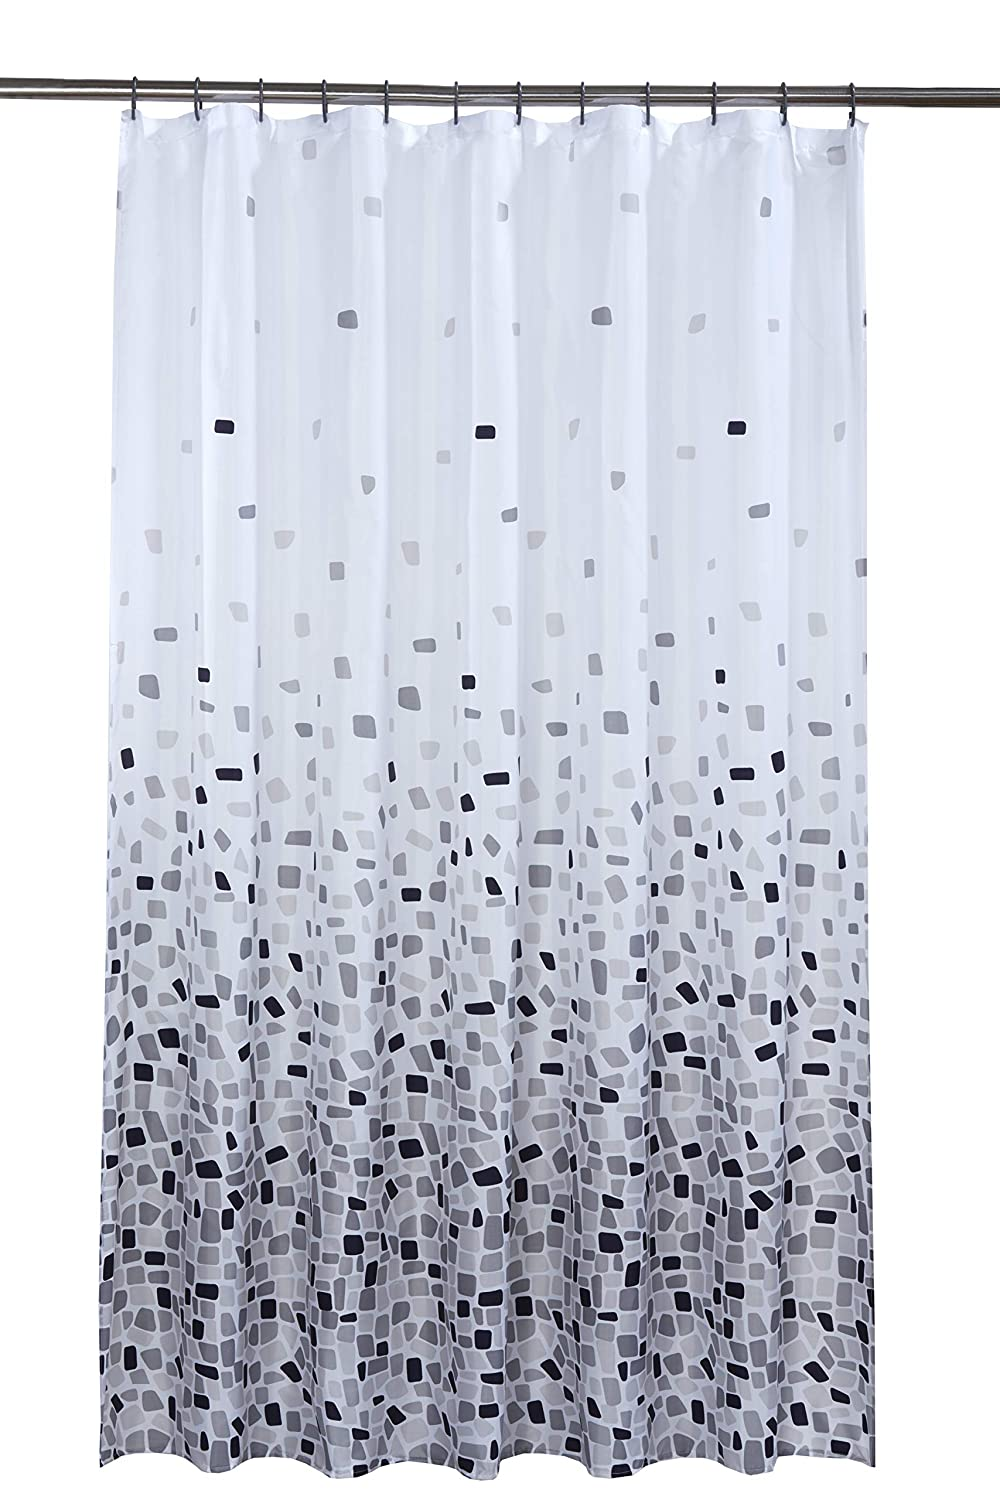 Vibrant Mosaic Grey On A White Background Polyester Shower Curtain Including 12 Rings By Waterline Amazoncouk Kitchen Home